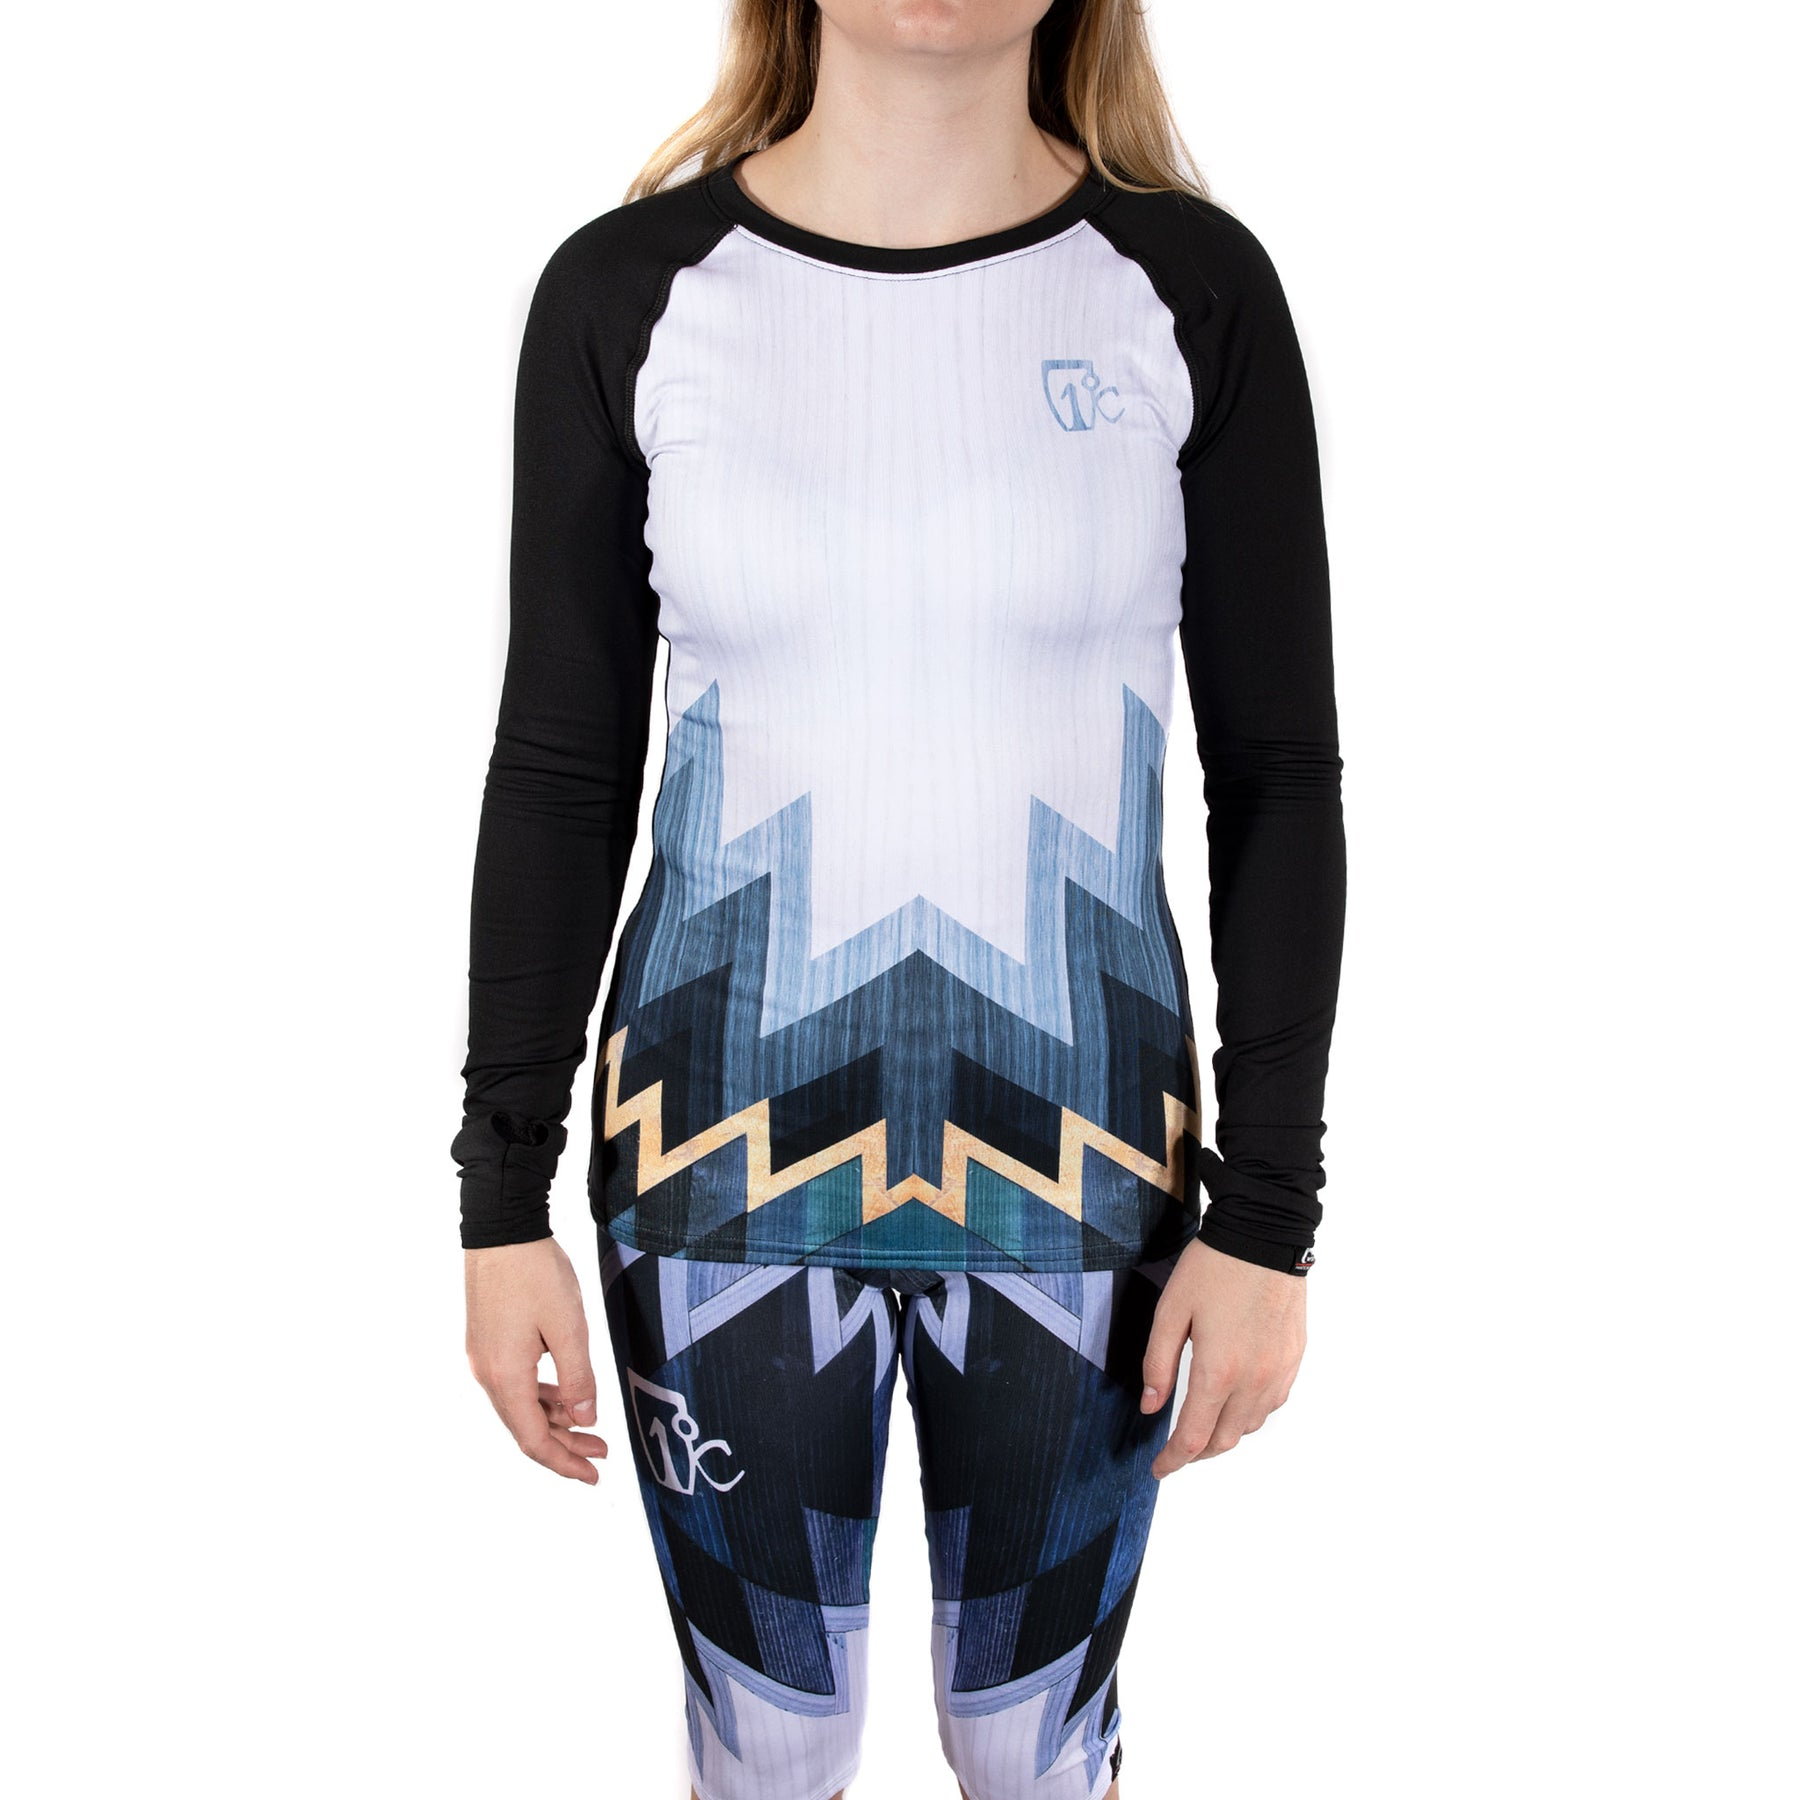 19/20 Womens Baselayer Top